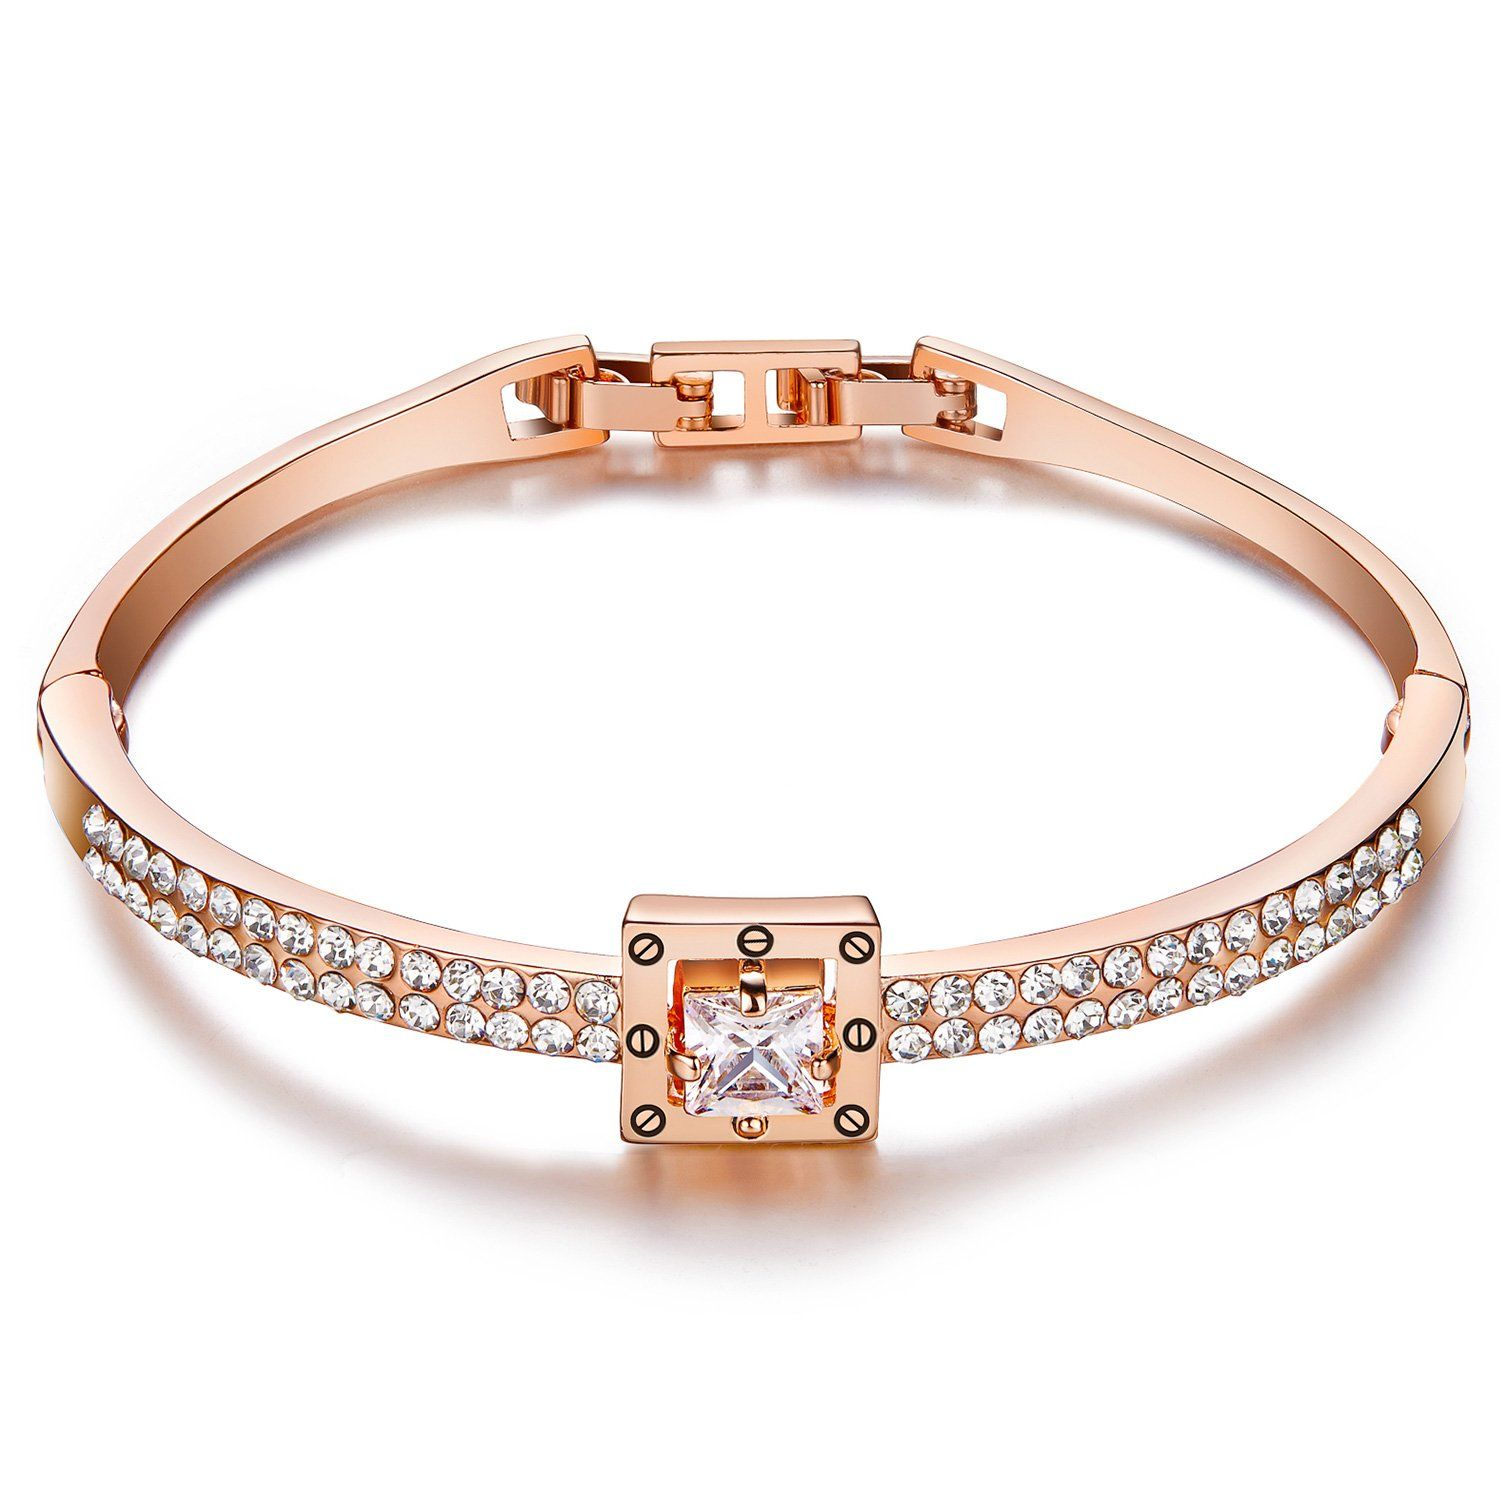 Valentines gifts menton ezil princess crystal bracelet rose gold